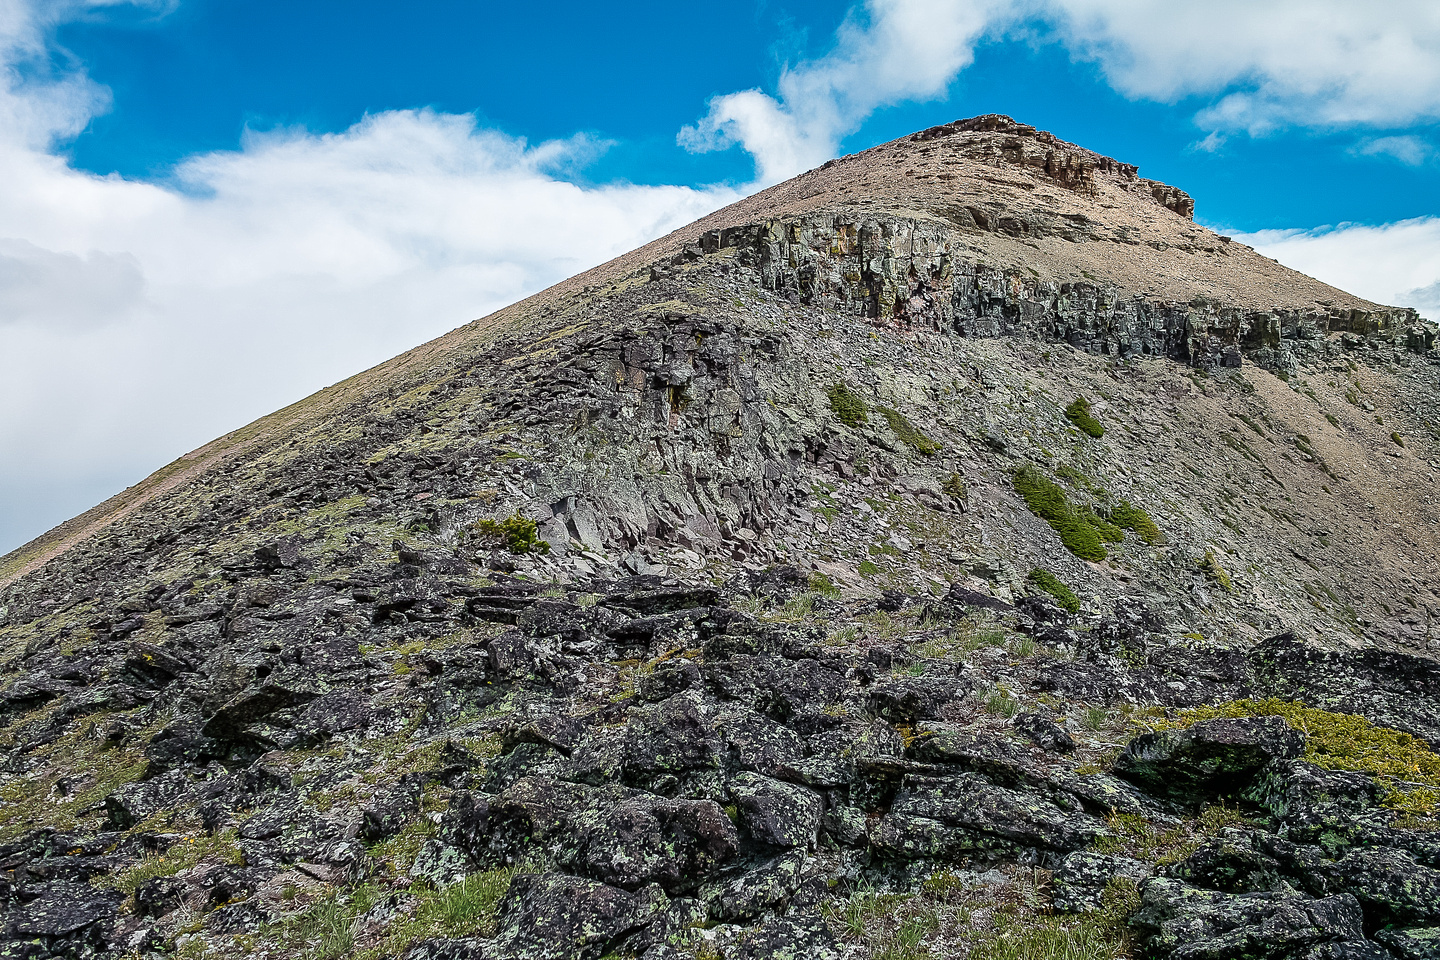 A view back to the surprisingly sunny summit of Syncline as we descend on the St. Eloi traverse.